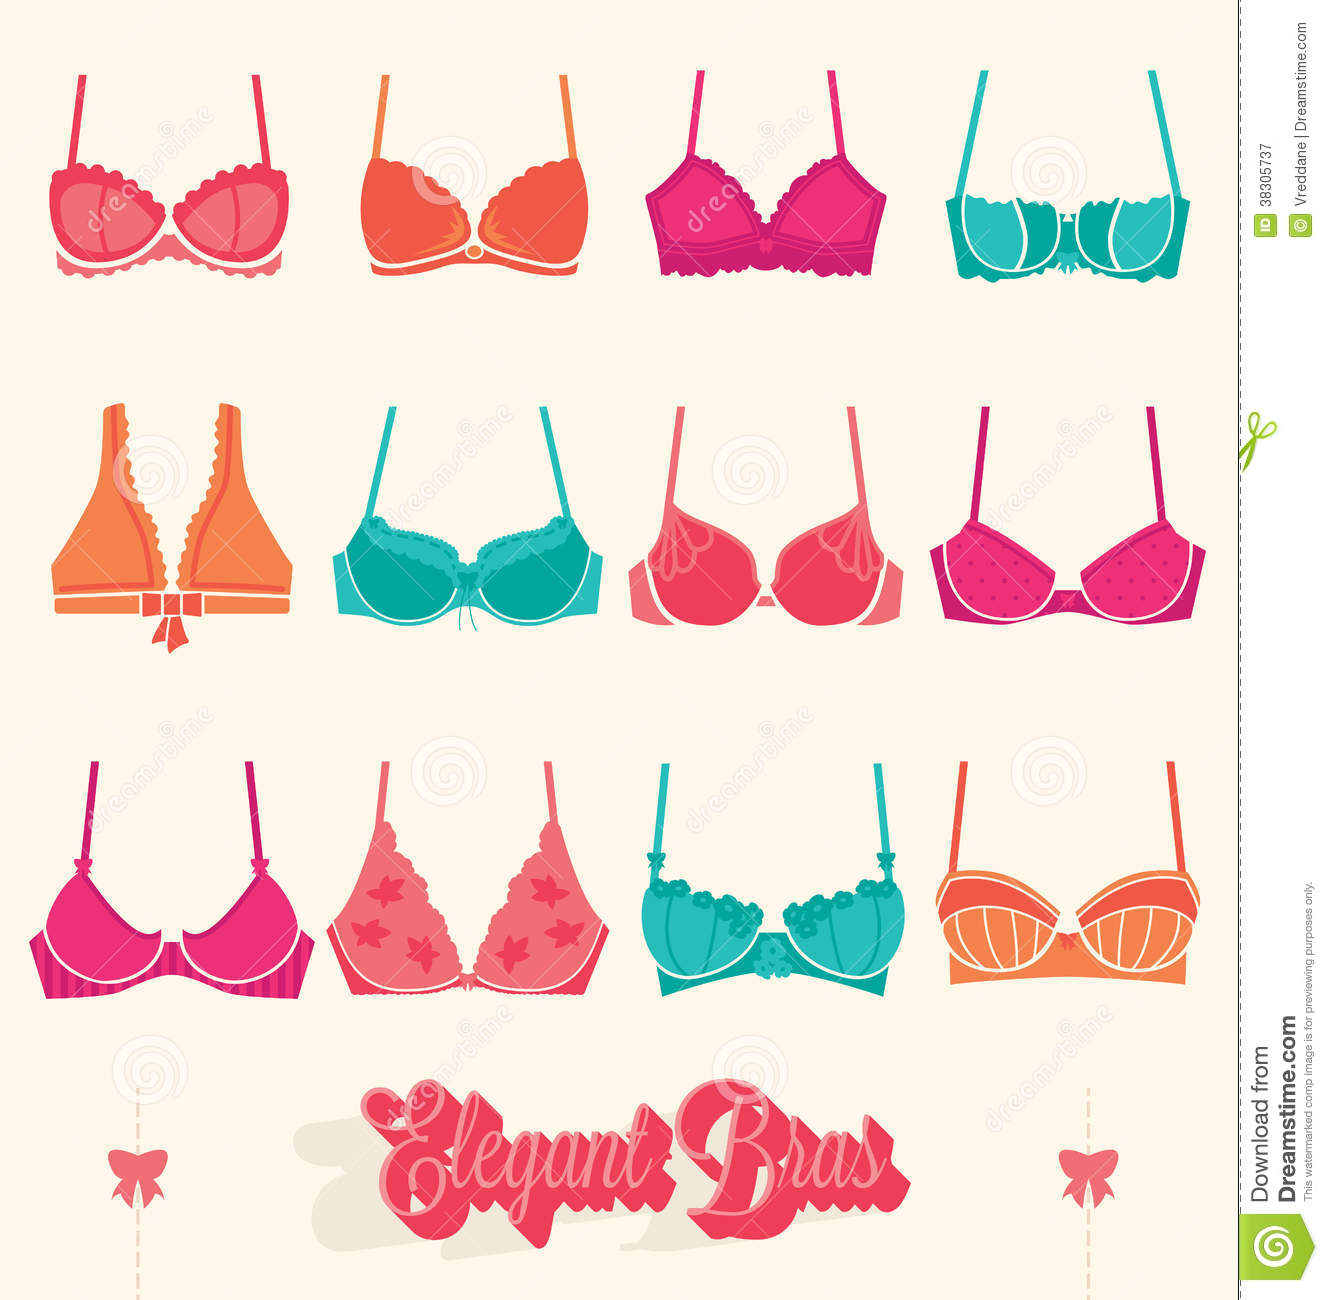 Bra Stock Illustrations – 3,697 Bra Stock Illustrations, Vectors ...